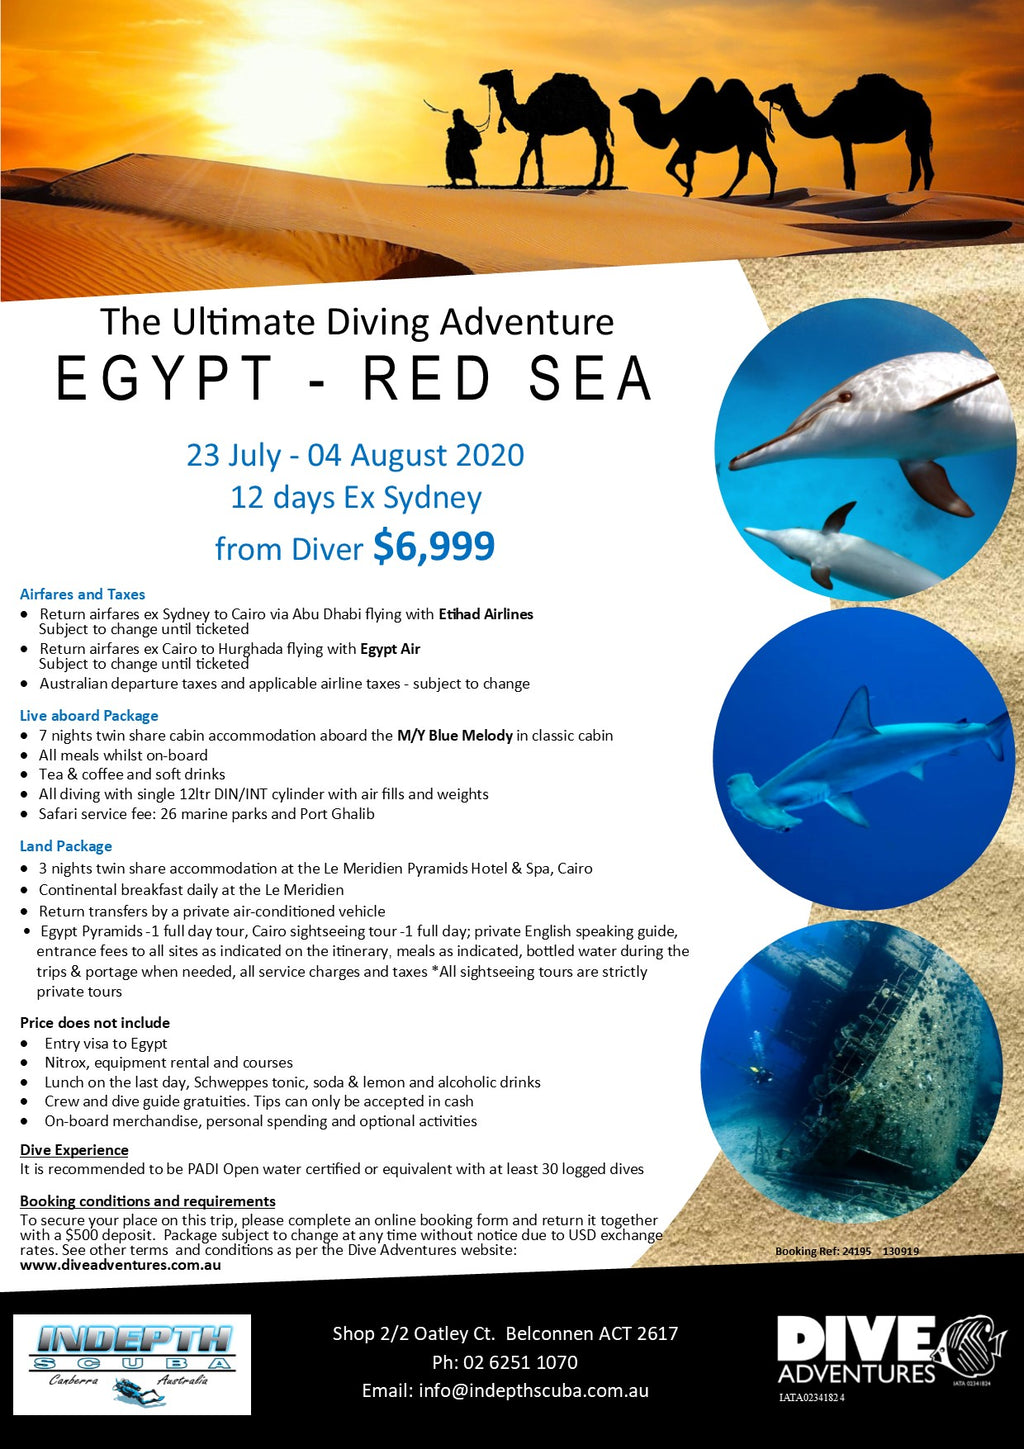 Dive The Red Sea, Egypt - 23rd July to 4th August 2020